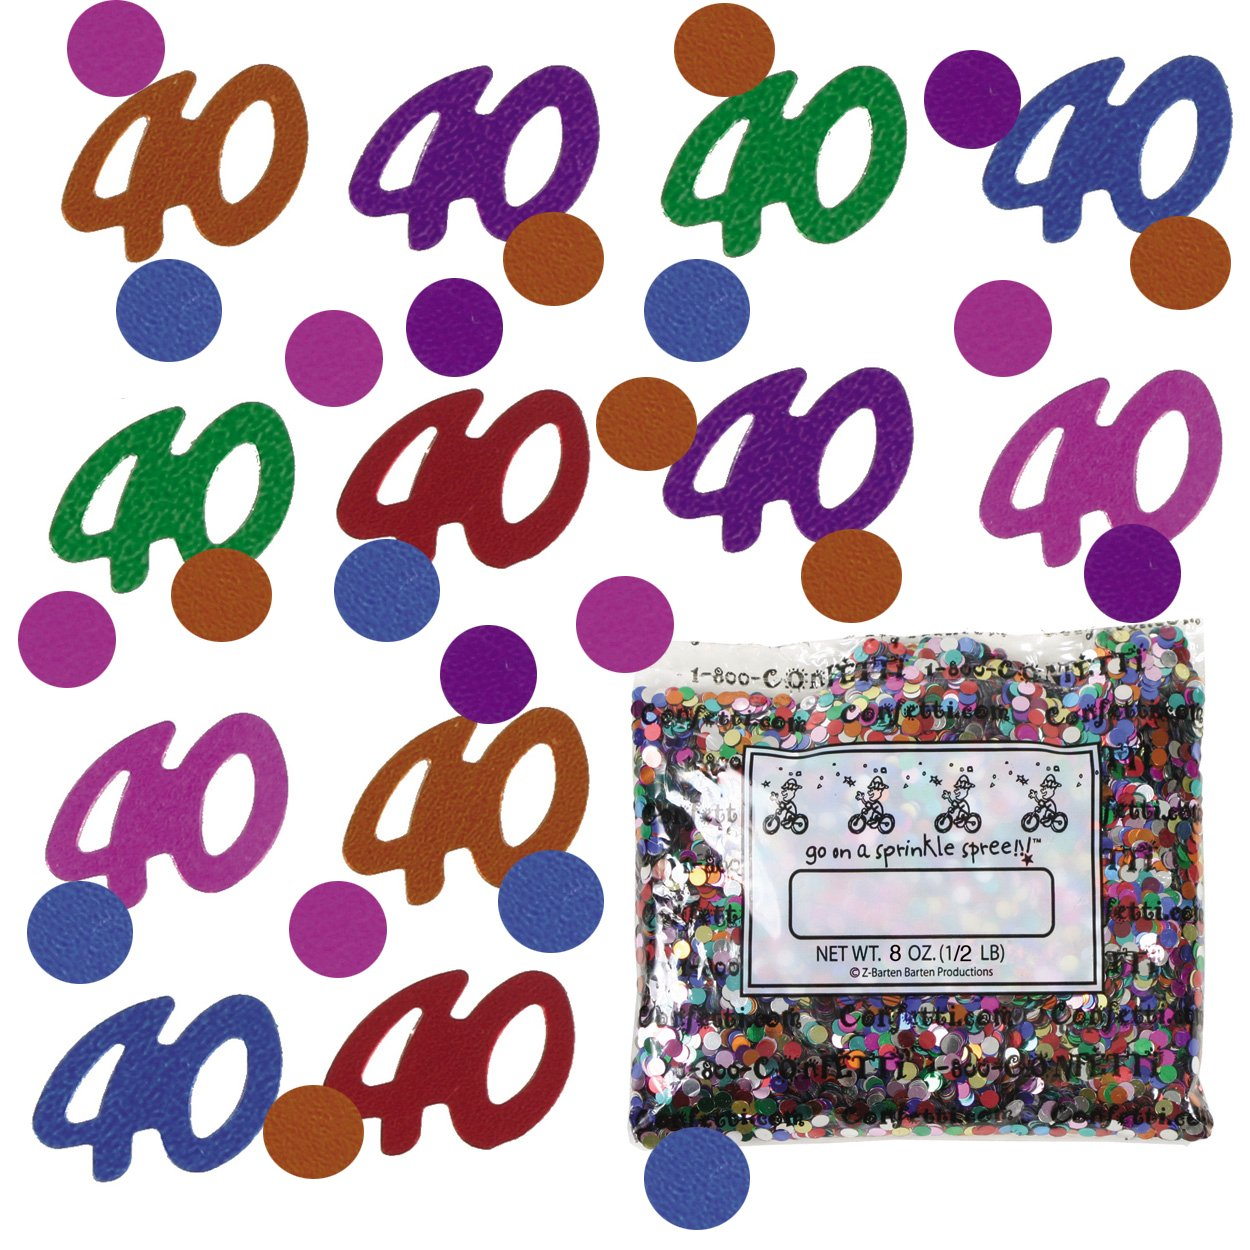 Confetti Mix - 40s & Circles Multicolors - One Pound - Free Priority Mail- (9003)